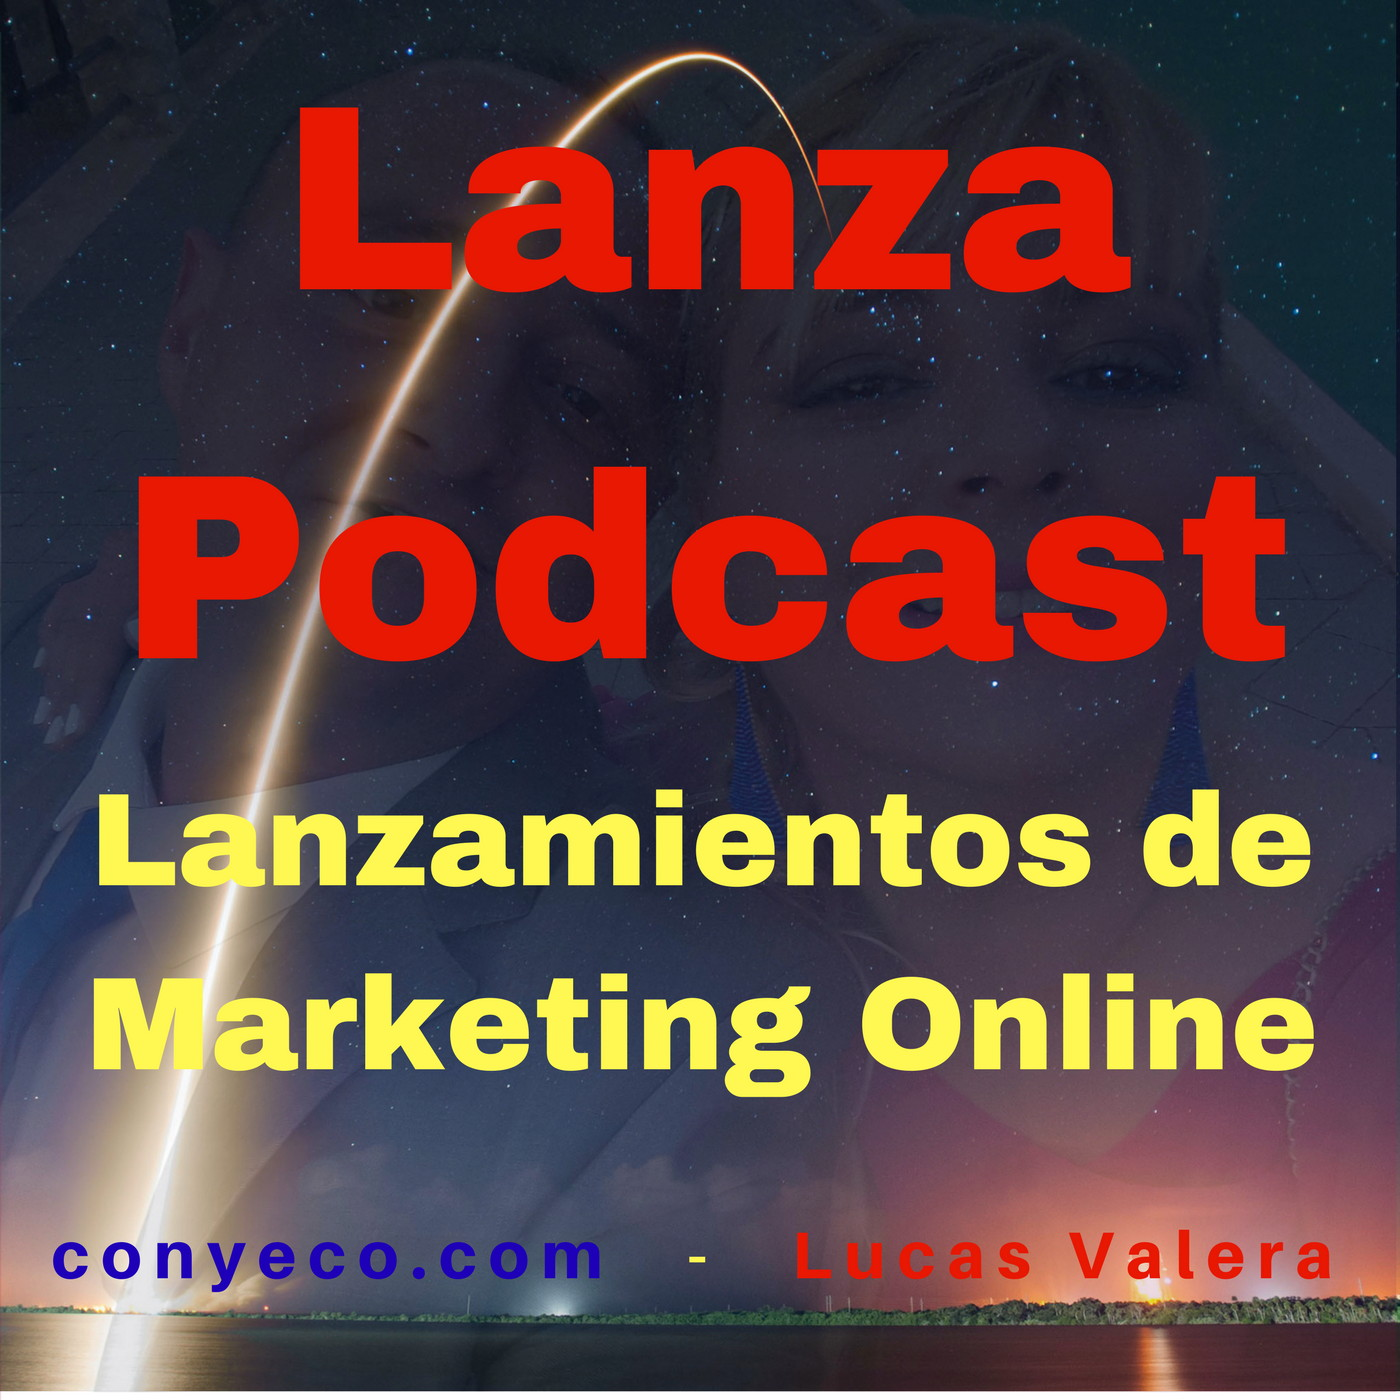 LanzaPodcast-Lanzamientos-Marketing-Online-conyeco.com-Lucas-Valera